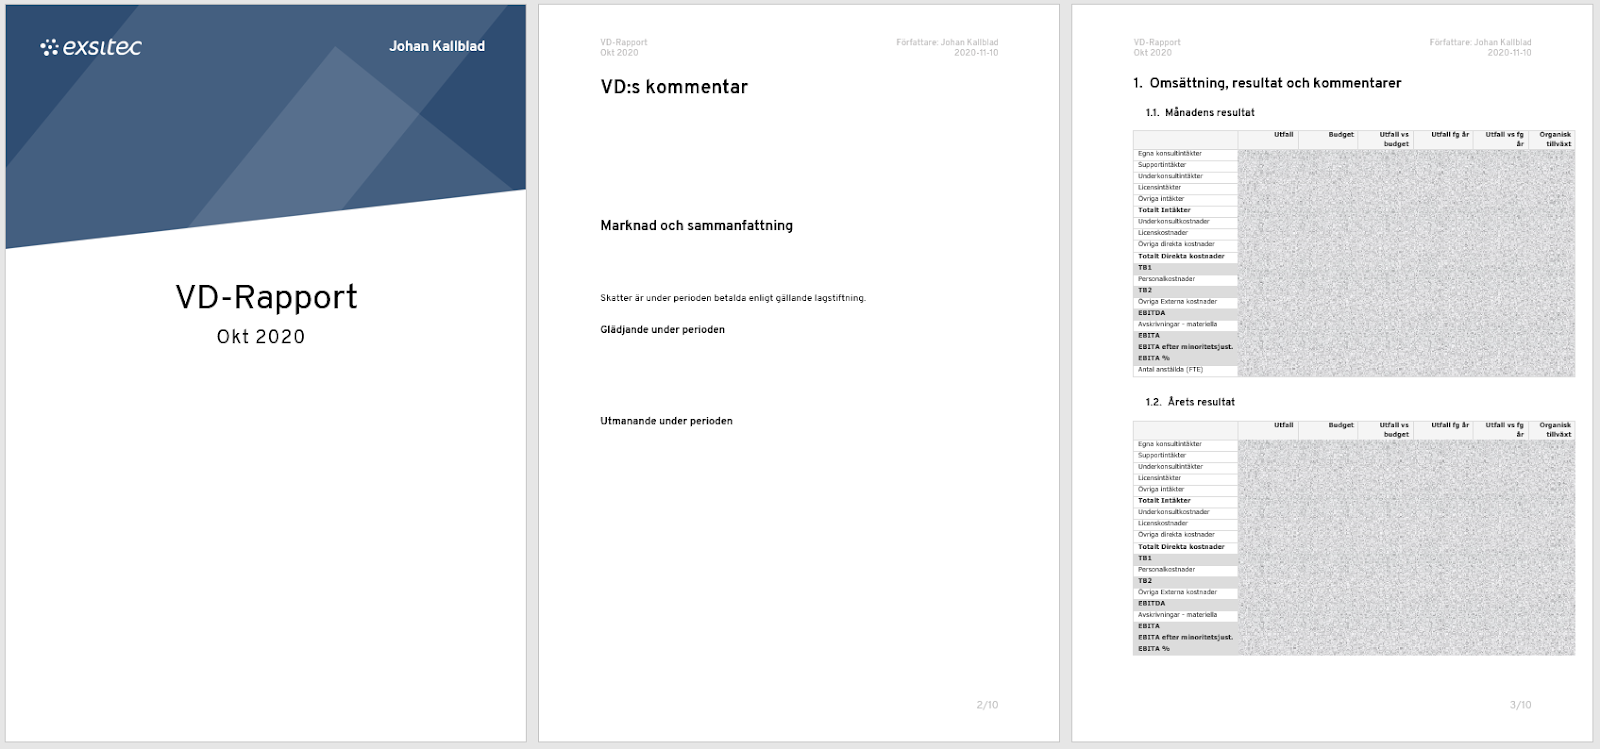 VD-rapport